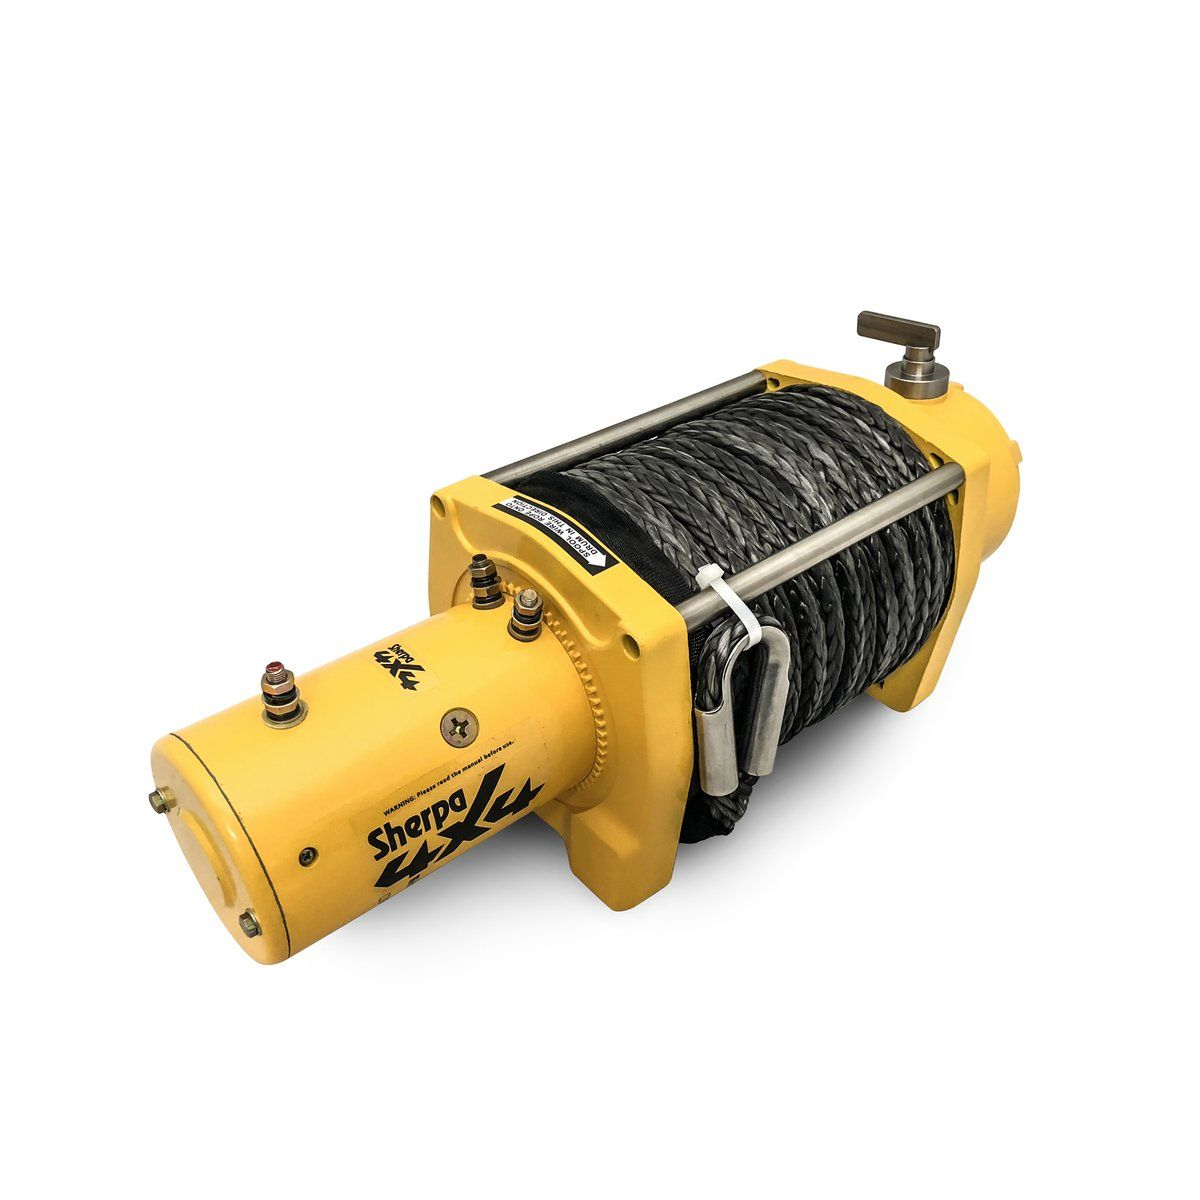 Stallion 25000lb Winch Winch Warn Winch Electric Winch